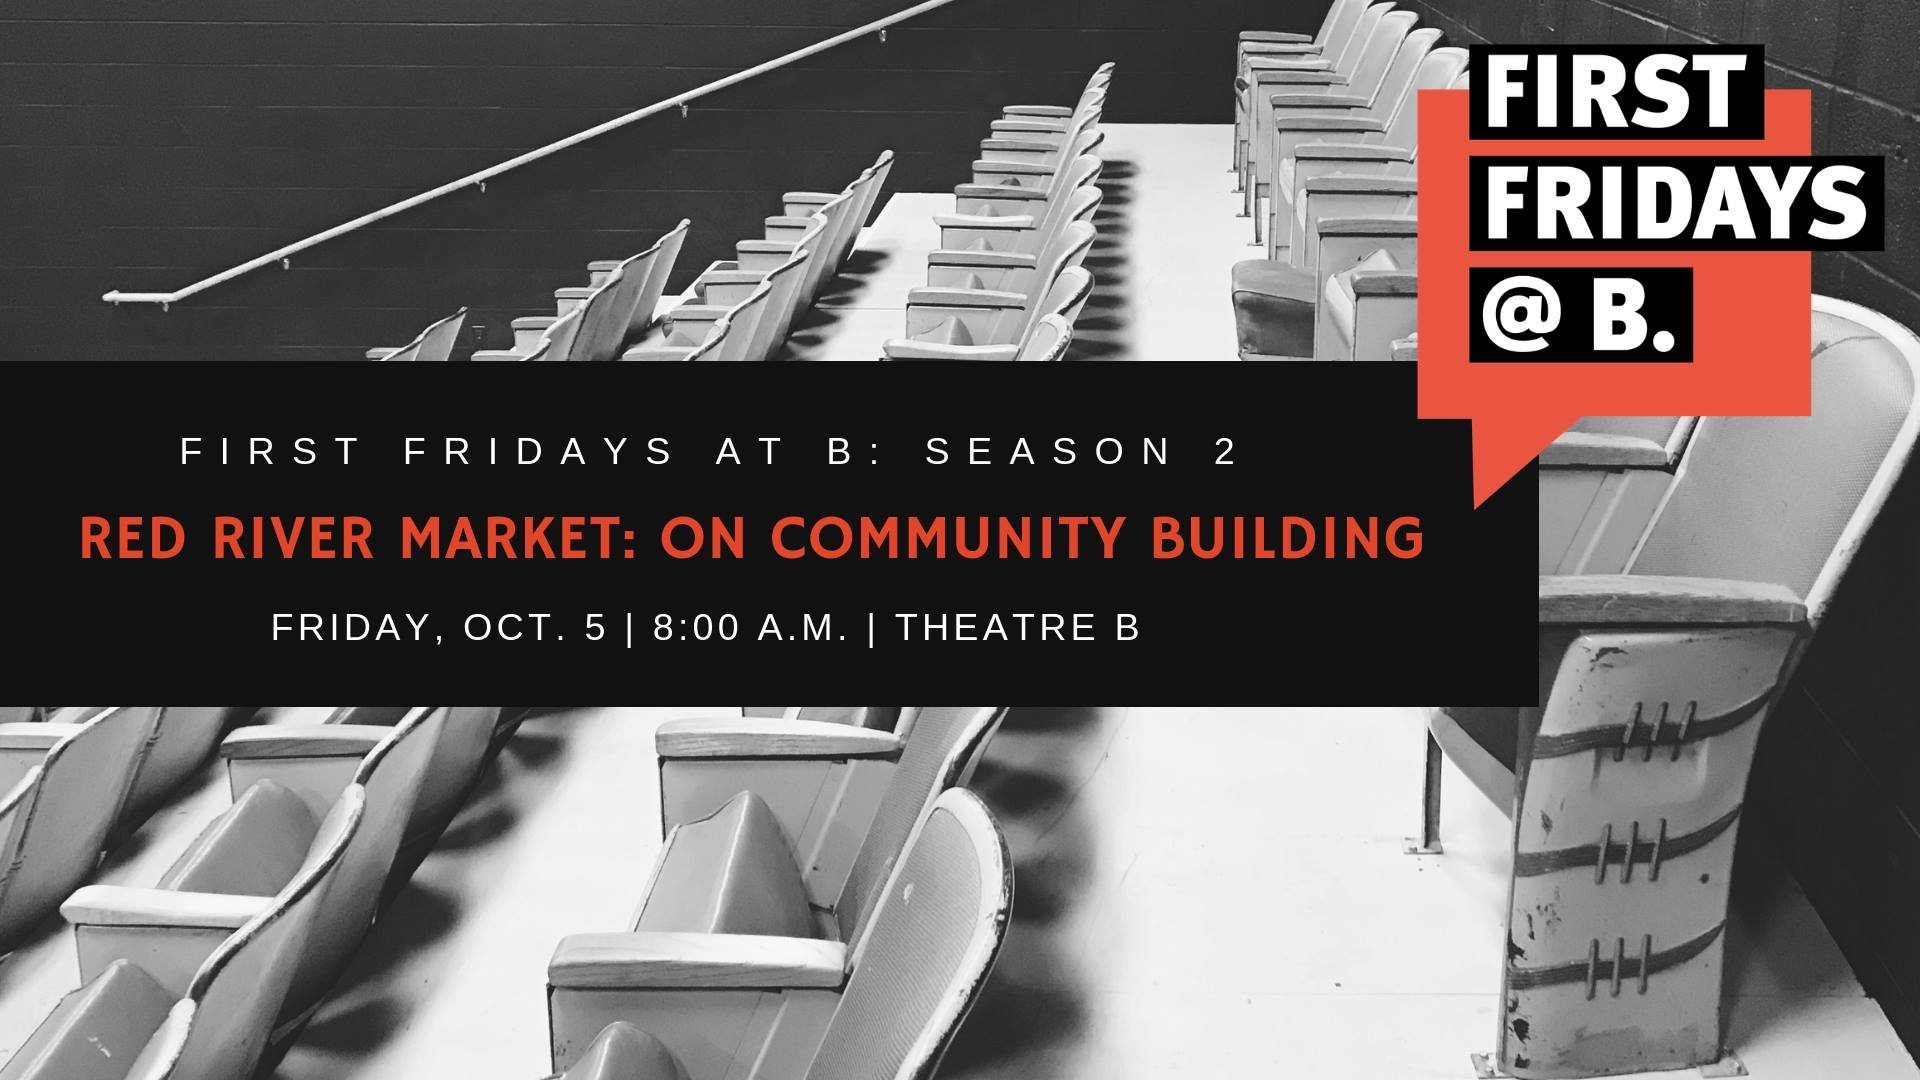 Friday, October 5 - Our October edition of First Fridays at B focused on how food + commerce can build community. Event featured Joe Burgum and Simone Wai of  Folkways  + Founders/Organizers of the  Red River Market .